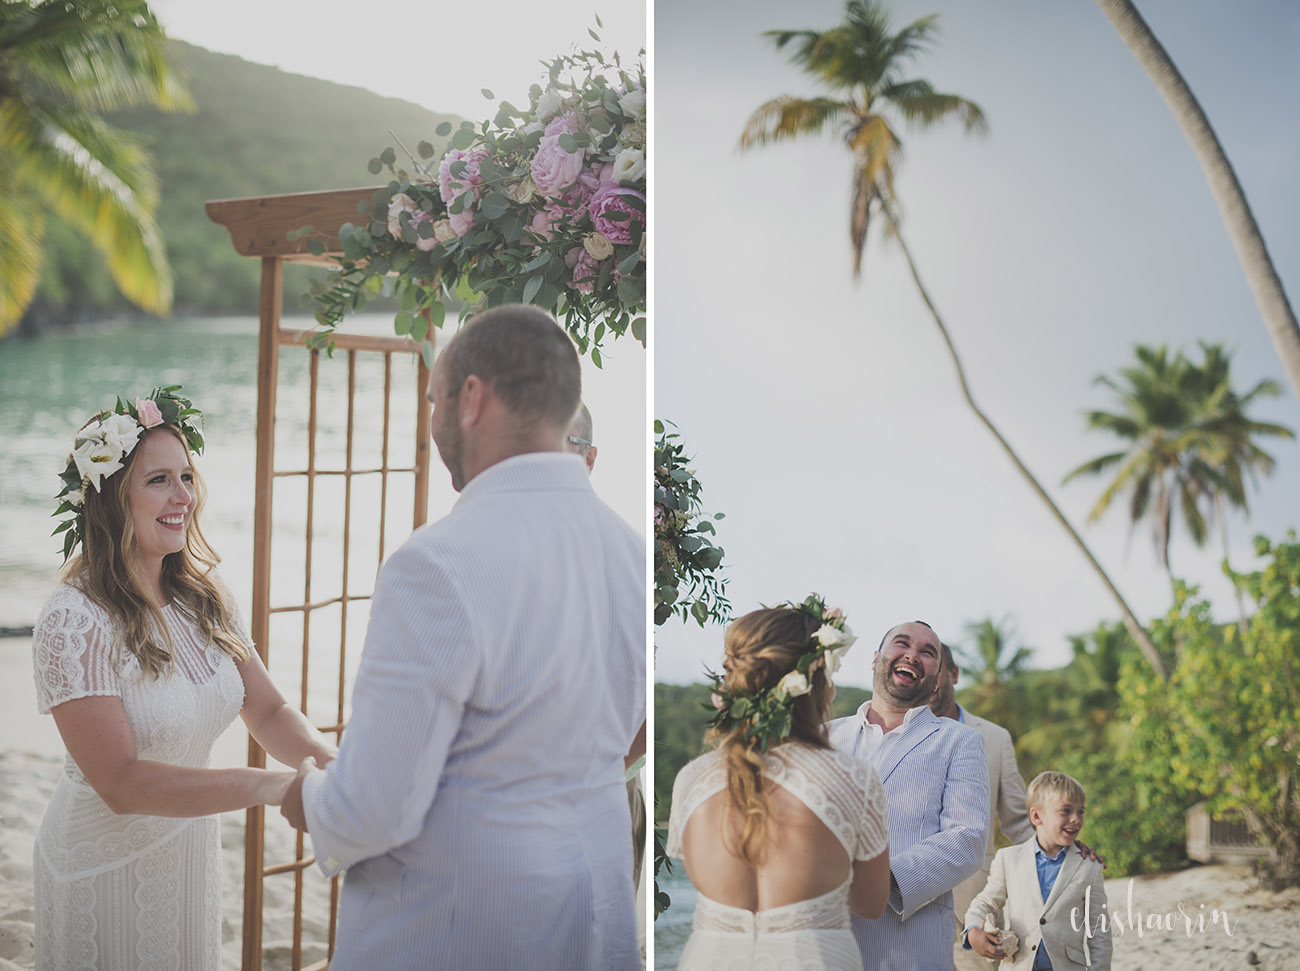 bride-and-groom-exchanging-vows-taken-in-st-john-by-elisha-orin-photography